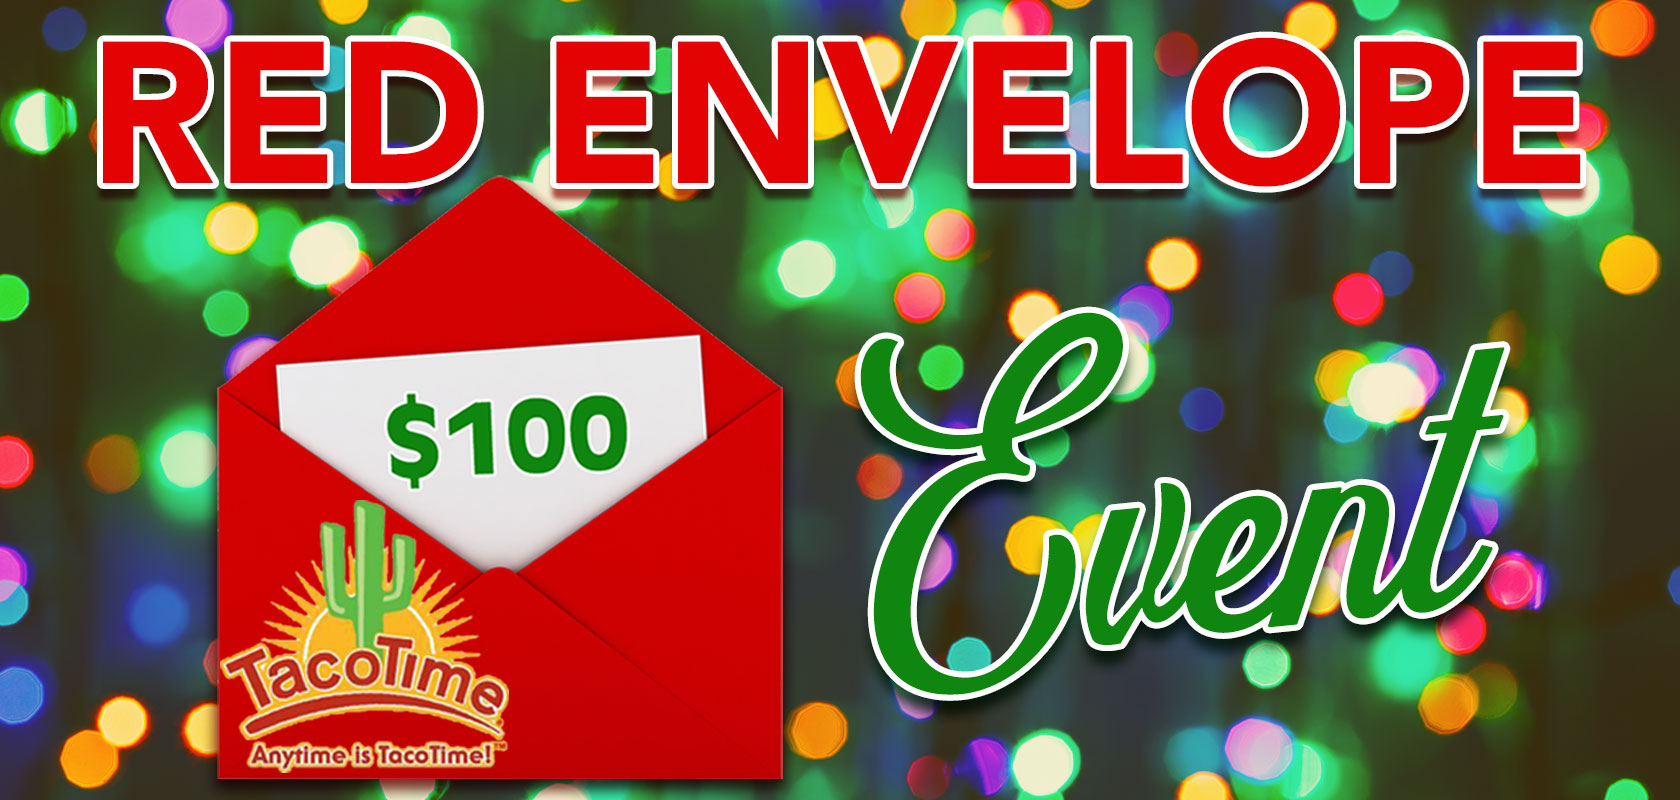 TacoTime's Red Envelope Event is back with Your Chance to Win $100!